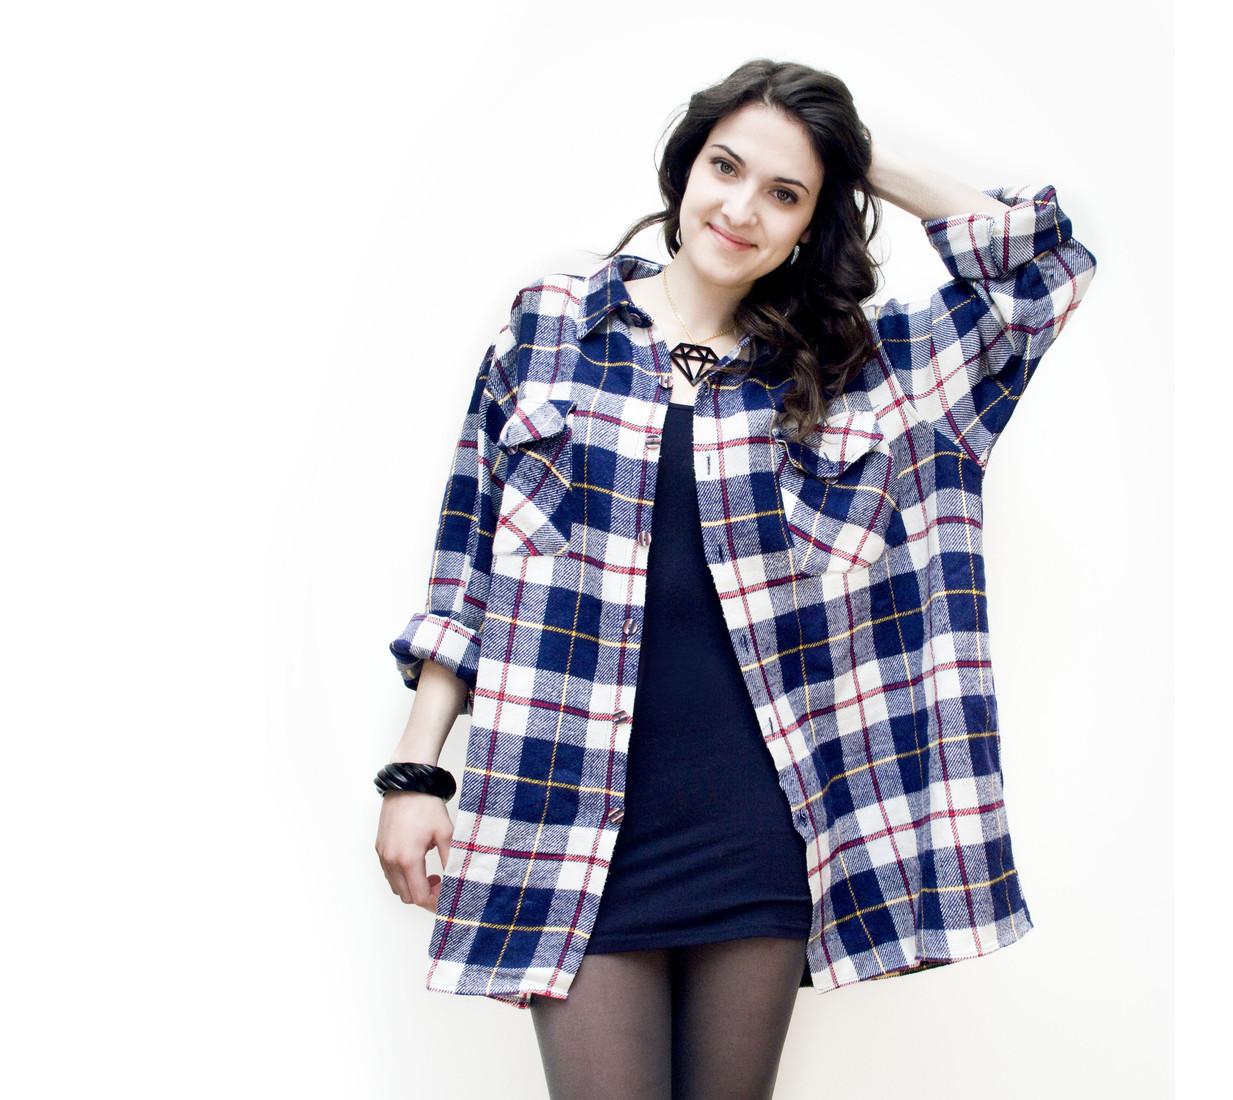 Oversized flannel shirt - Pop Sick Vintage